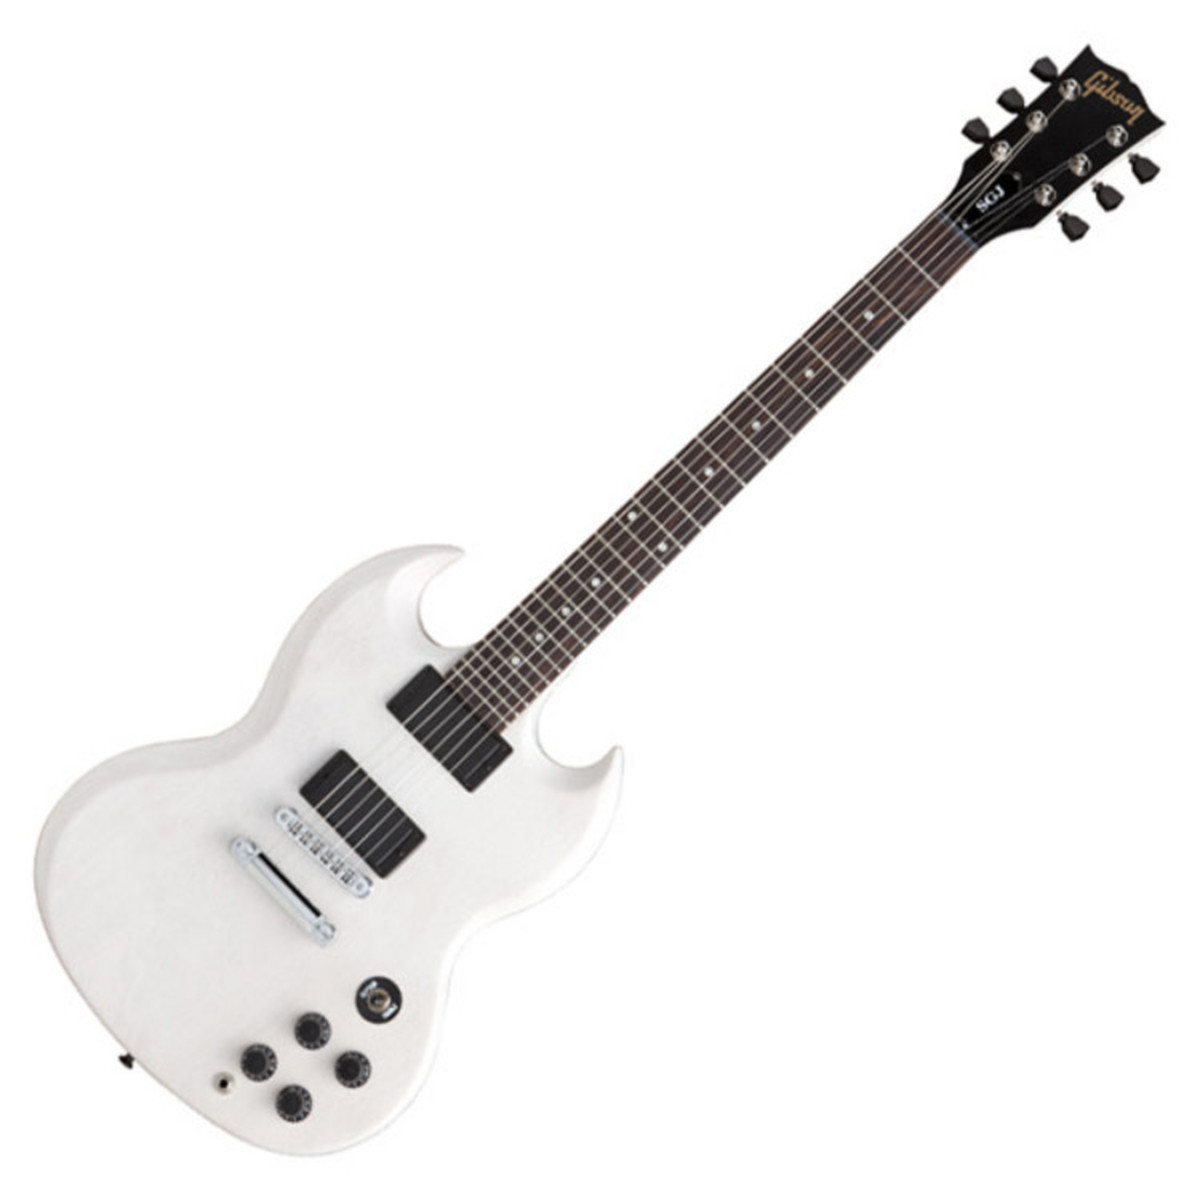 Gibson SG Junior, Rubbed White Low Gloss Satin - Nearly New